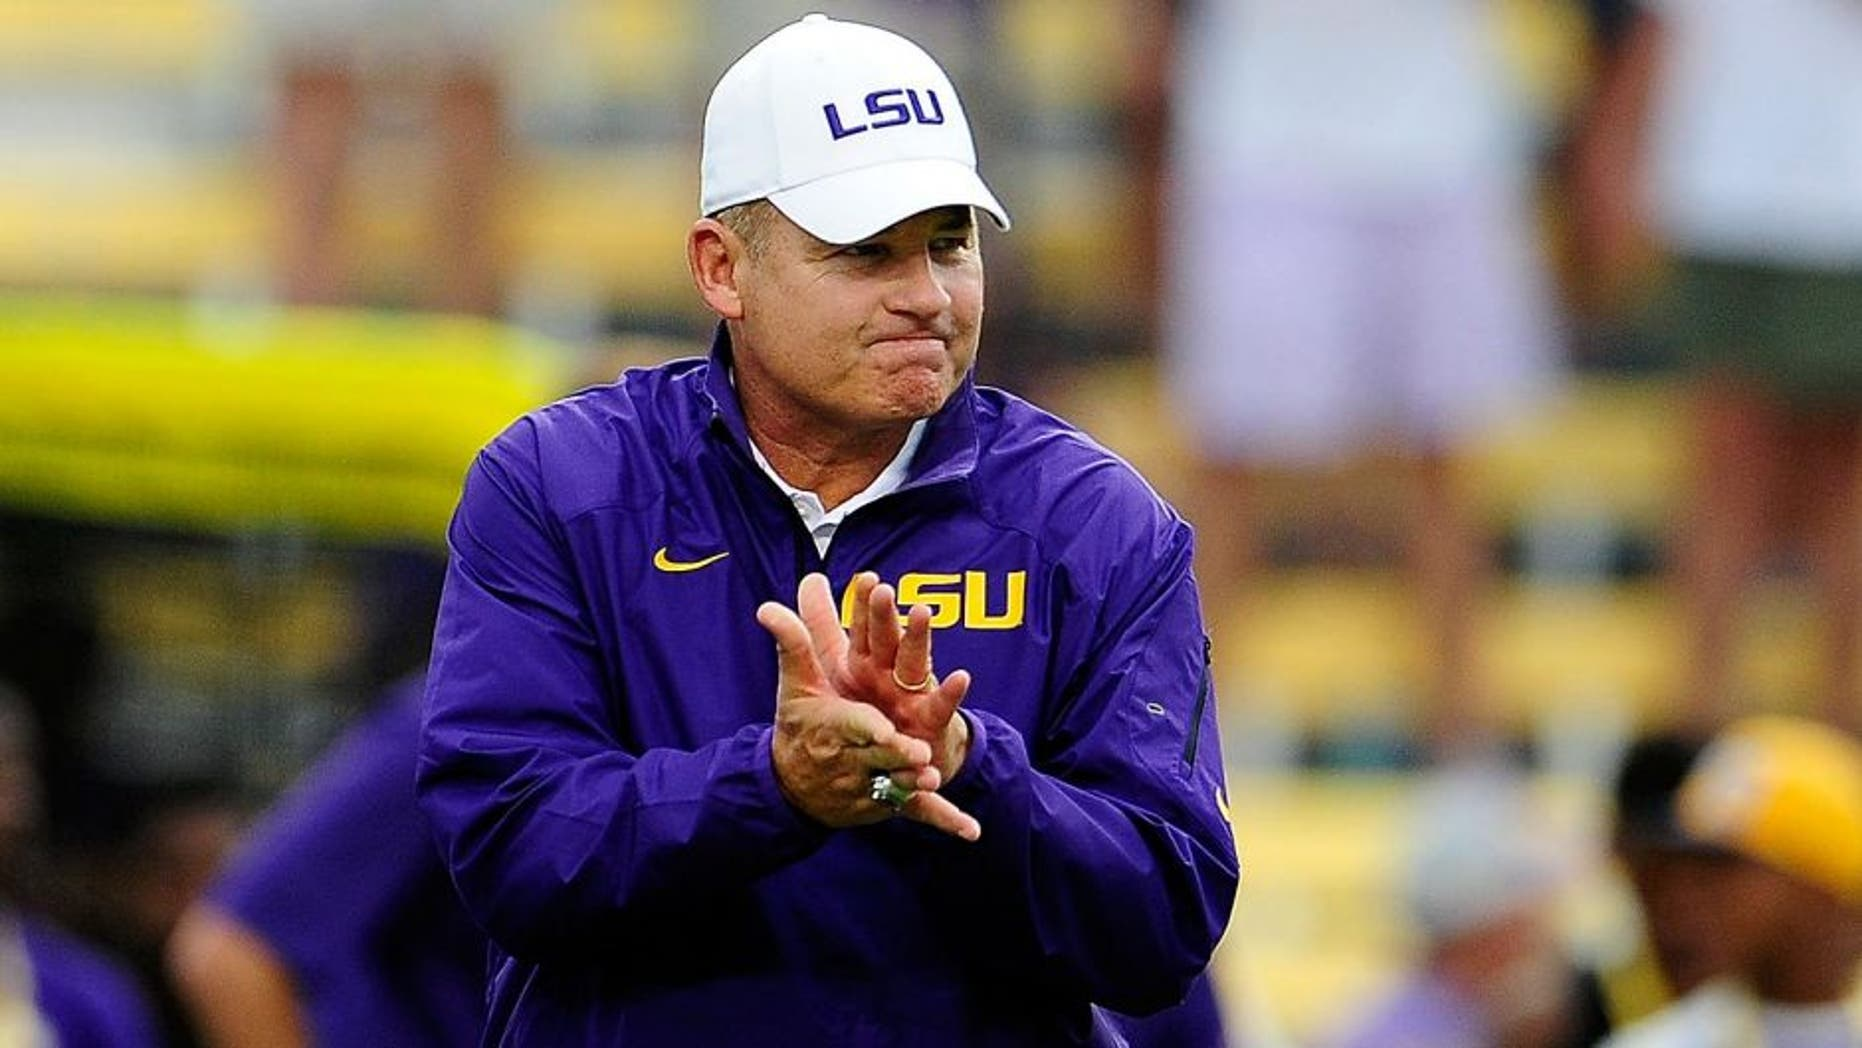 BATON ROUGE, LA - SEPTEMBER 07: Les Miles, head coach of the LSU Tigers, watches his team during warmups prior to a game at Tiger Stadium against the UAB Blazers on September 7, 2013 in Baton Rouge, Louisiana. LSU won the game 56-17. (Photo by Stacy Revere/Getty Images)